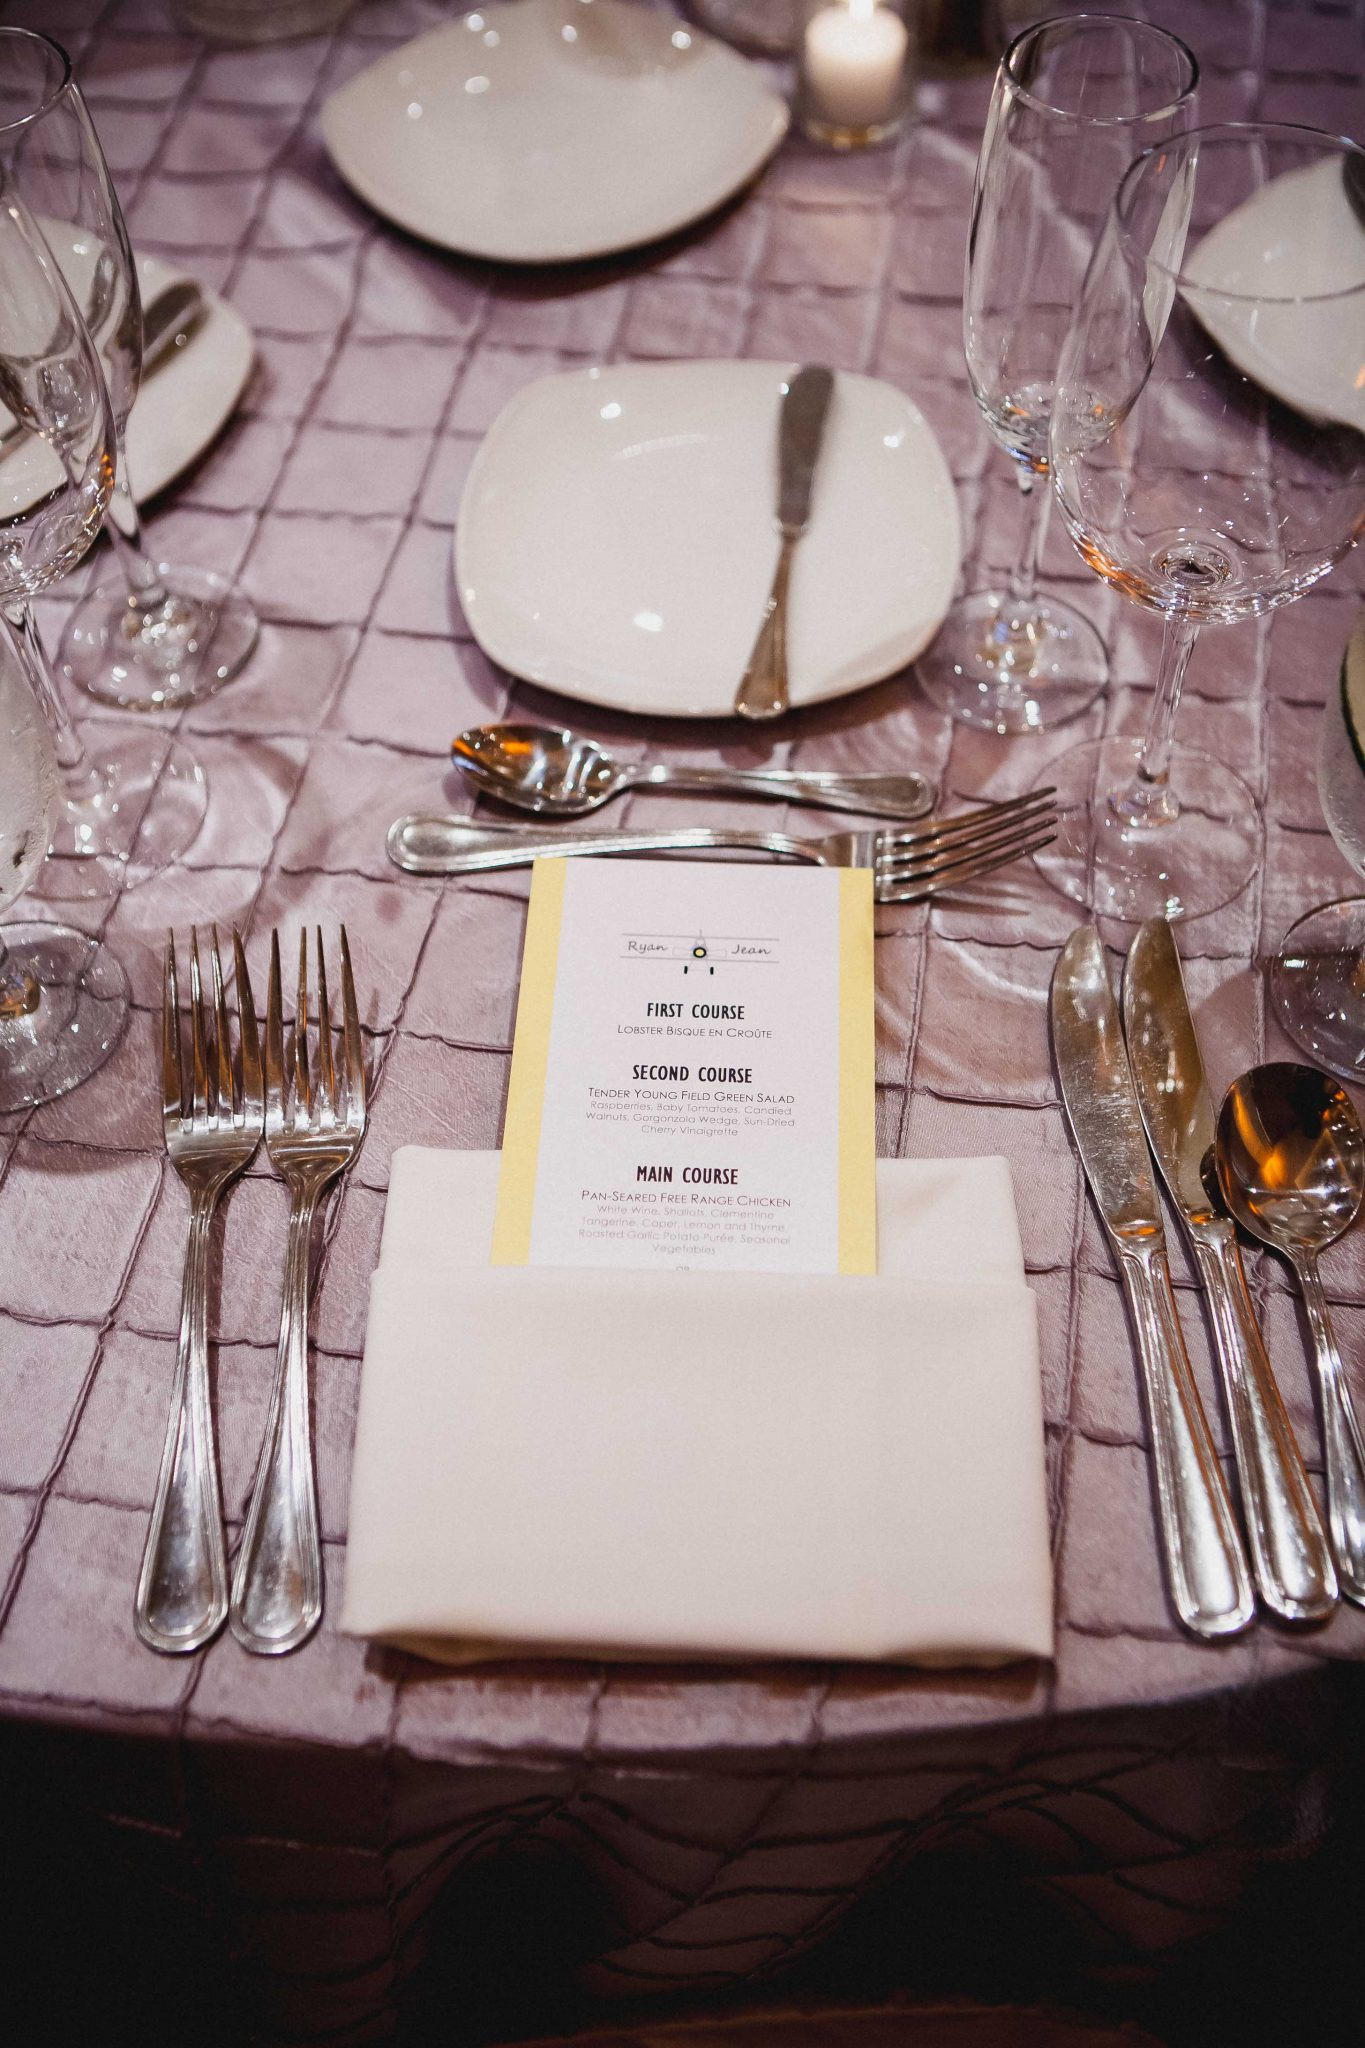 Wedding dinner menu placed inside of cloth napkin on a silver table cloth